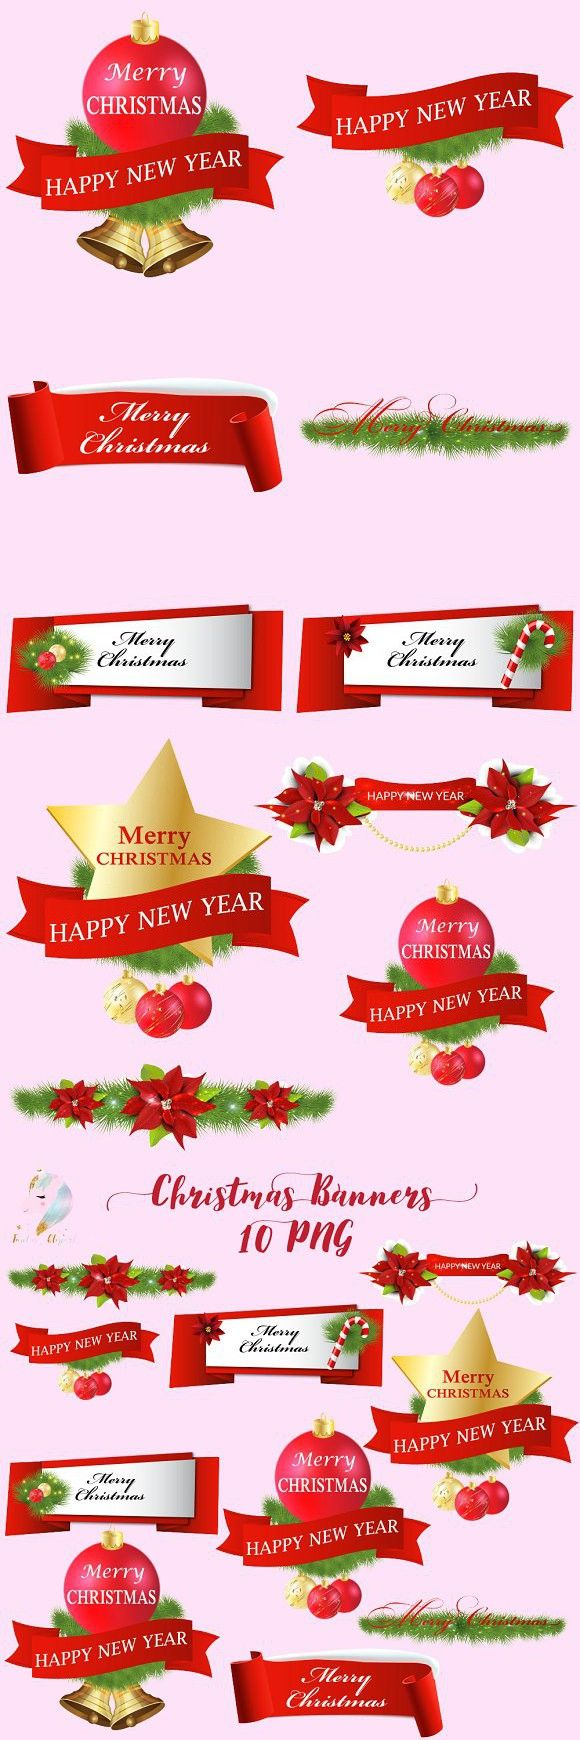 hight resolution of christmas banners clipart